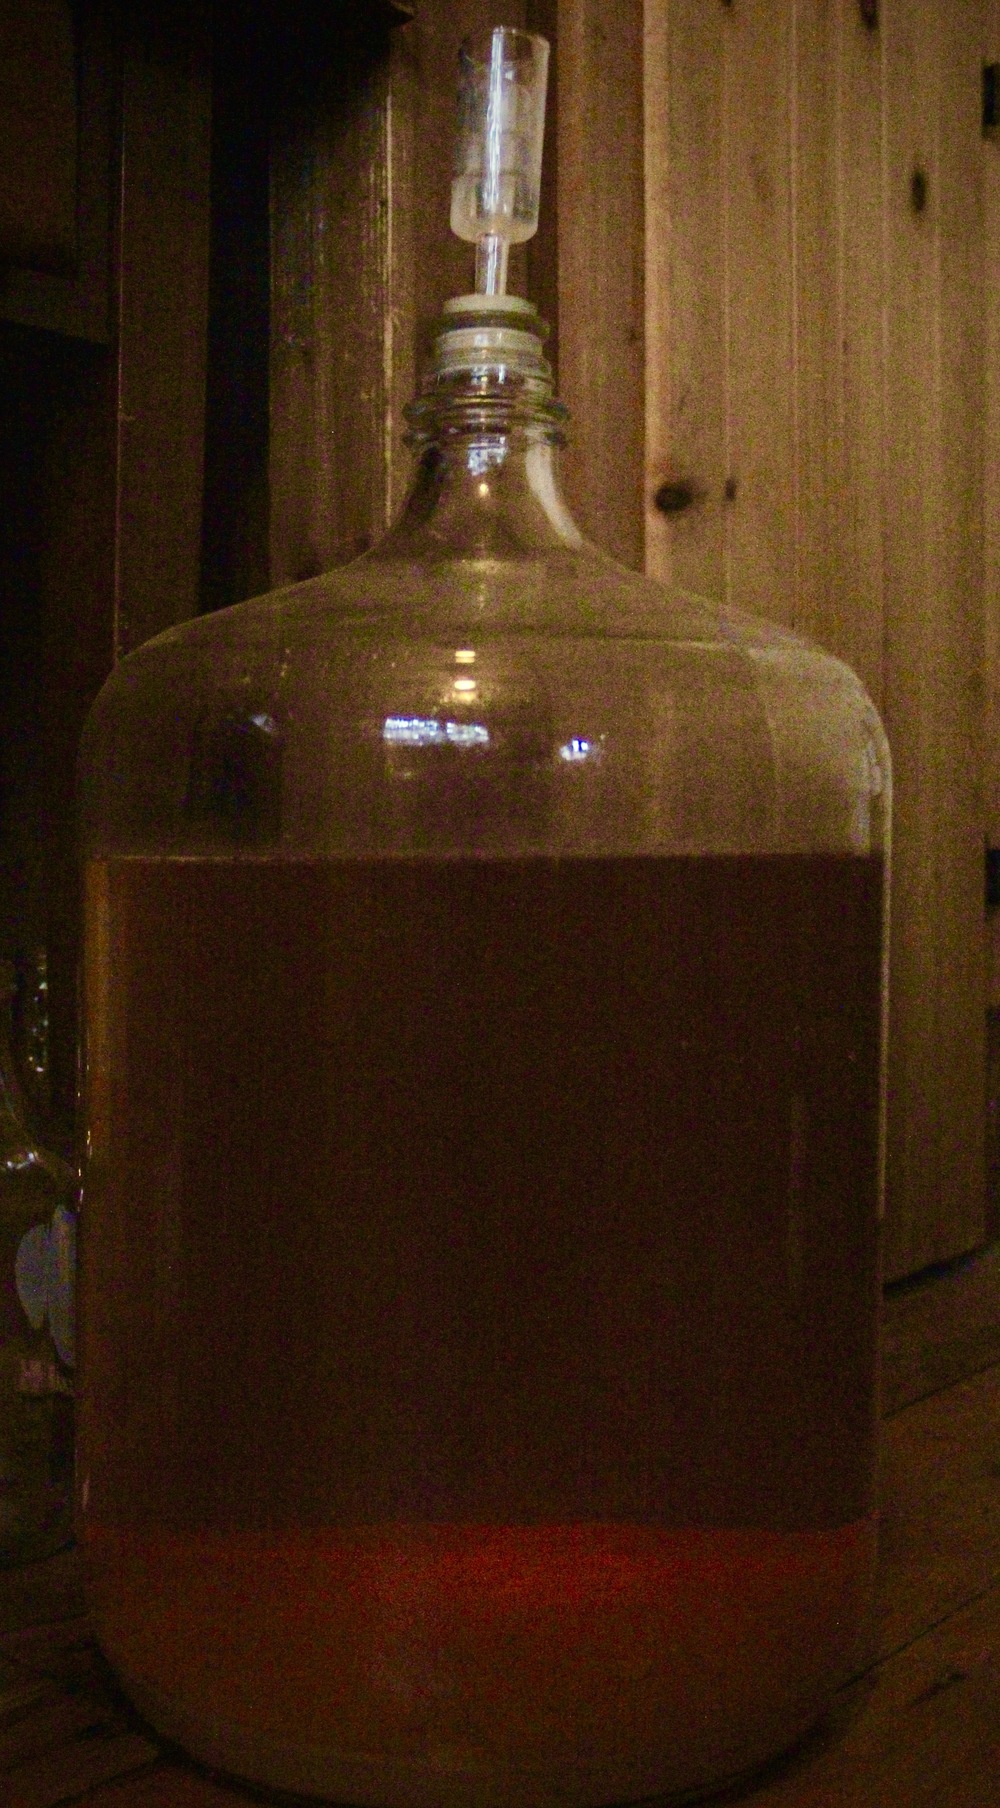 Hard cider, ready for the bottle.